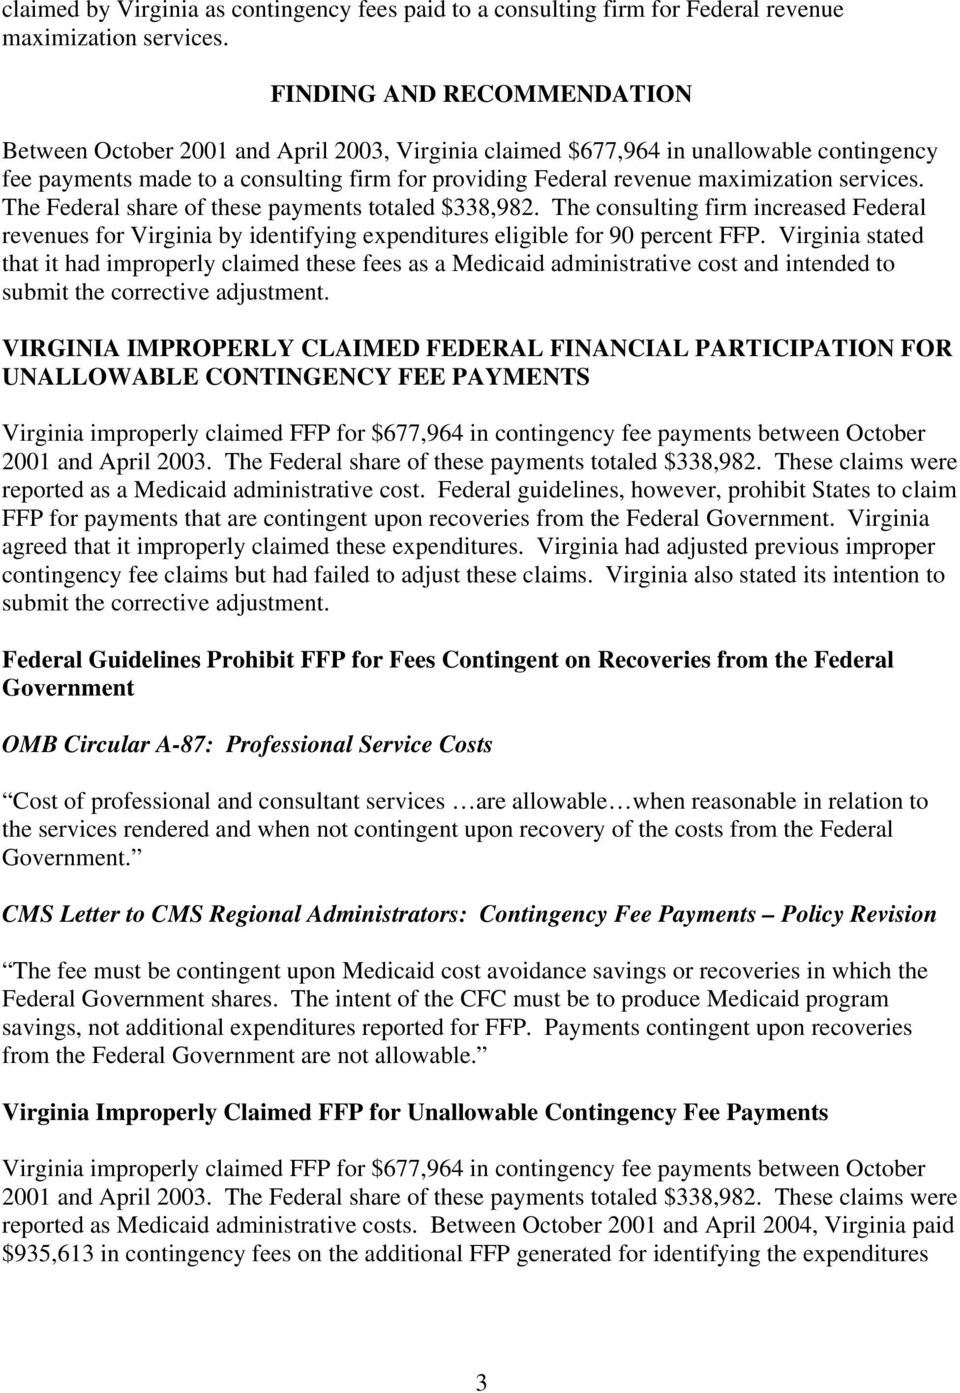 services. The Federal share of these payments totaled $338,982. The consulting firm increased Federal revenues for Virginia by identifying expenditures eligible for 90 percent FFP.